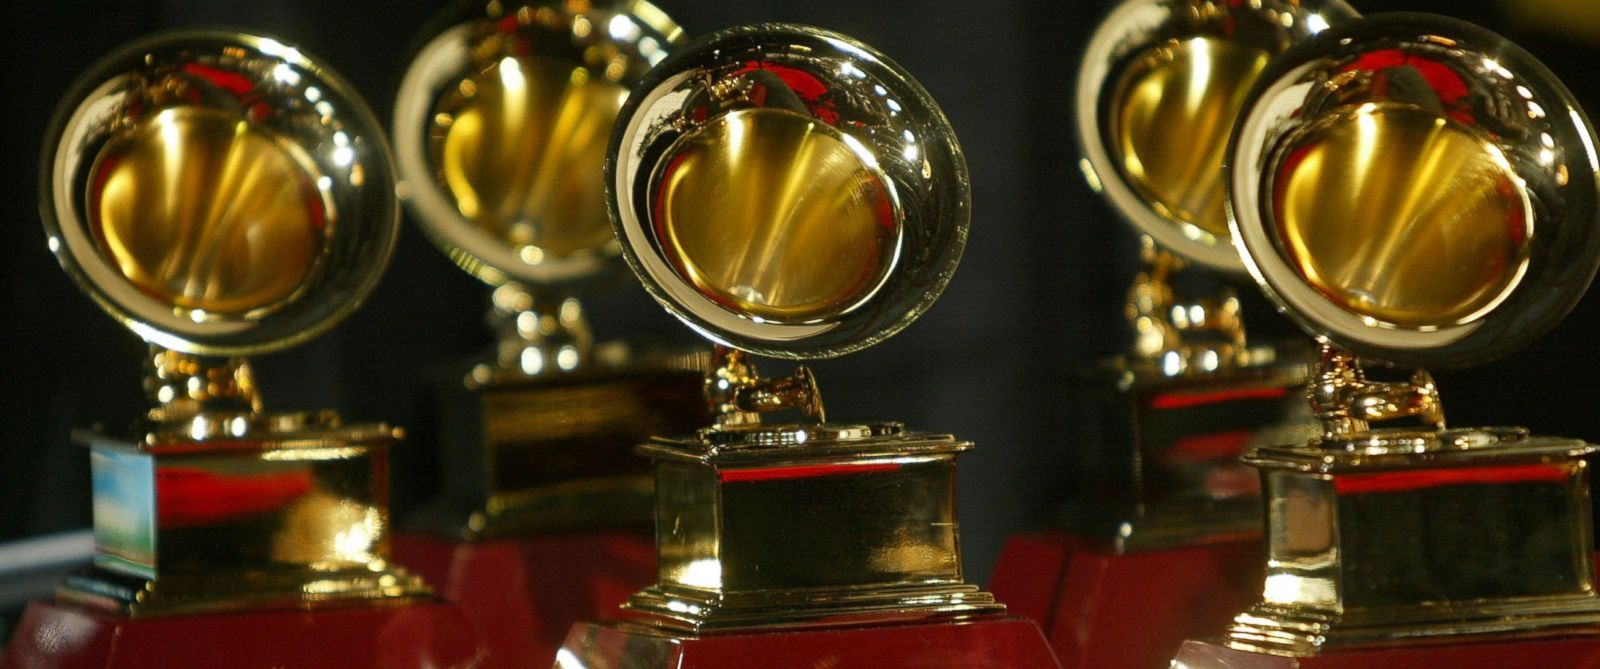 PHOTO: This file photos shows Grammy Award trophies on display in the press room at the 6th Annual Latin Grammy Awards, Nov. 3, 2005 in Los Angeles.